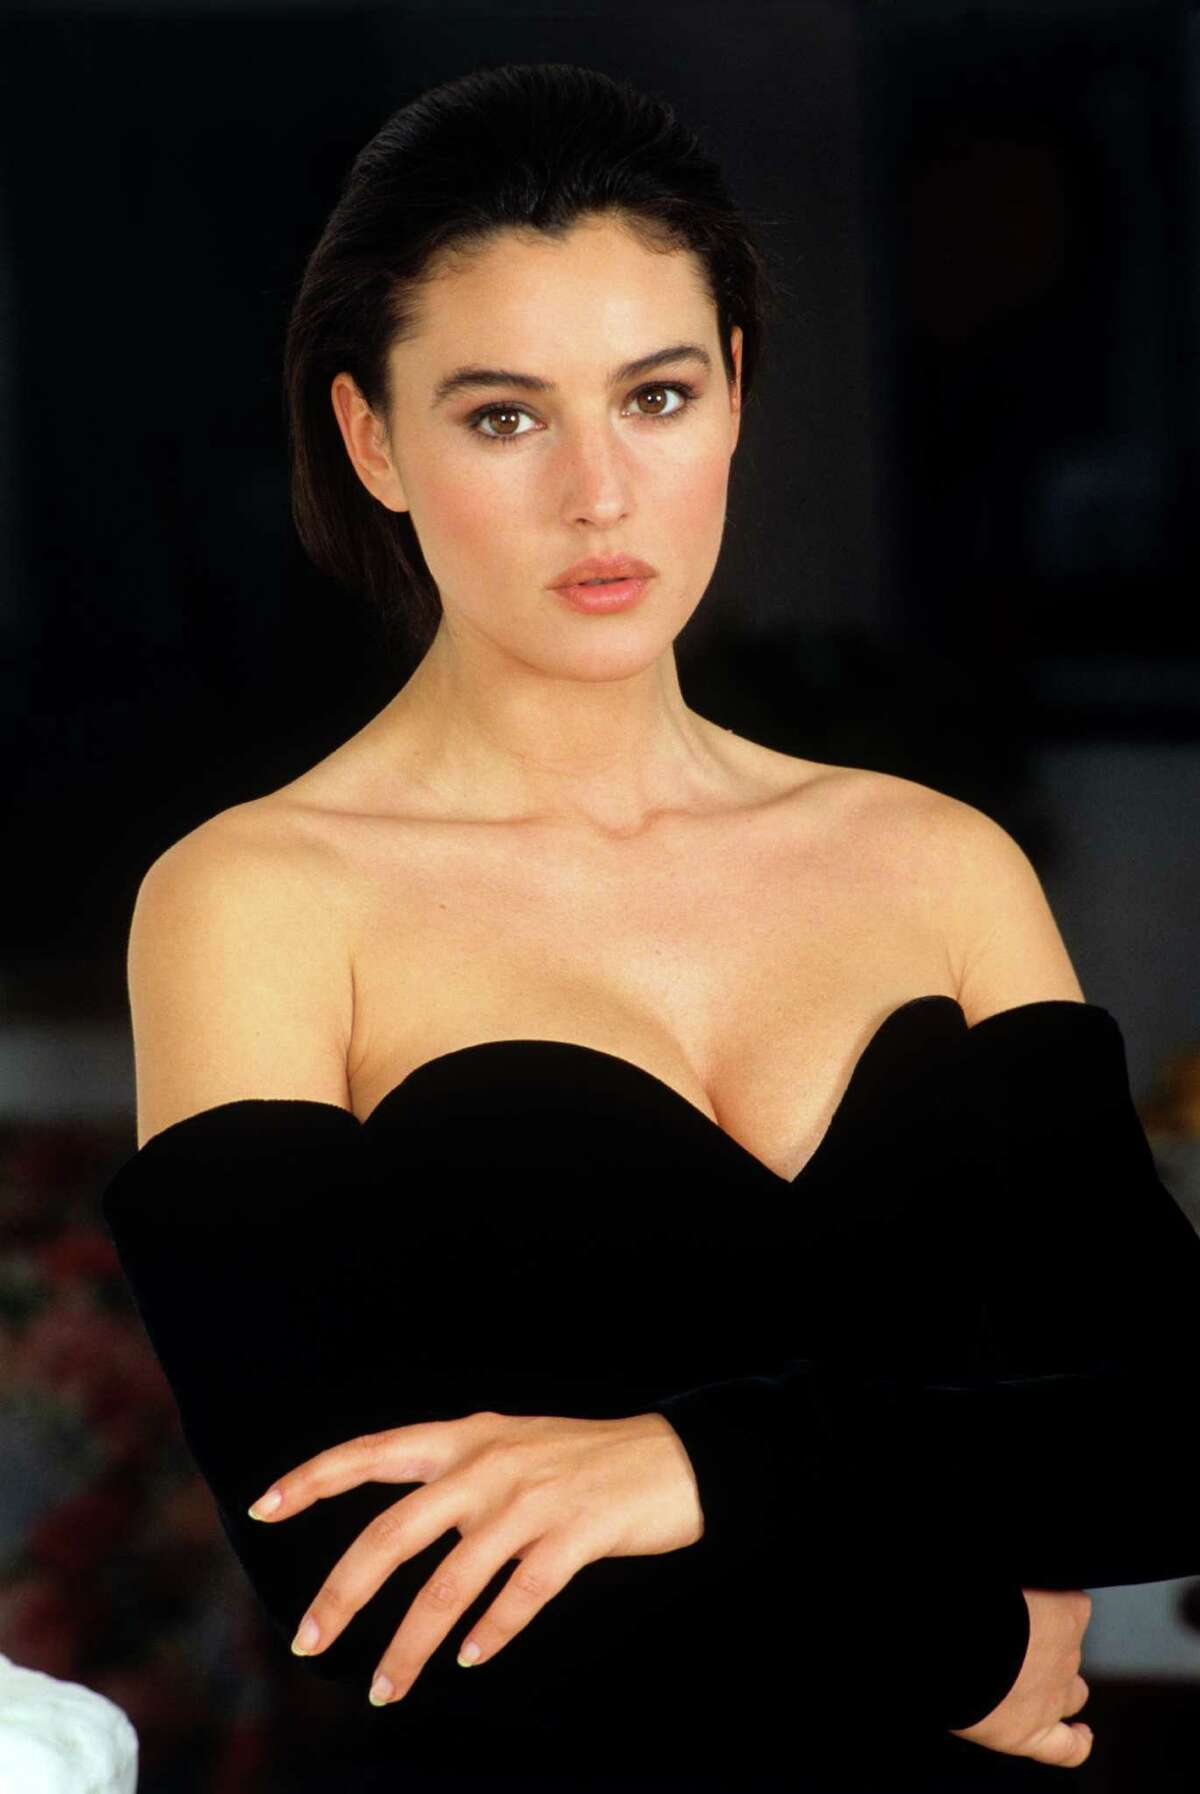 Italian actress and model Monica Bellucci, seen here in a 1985 photo, was born Sept. 30, 1964. While her career has been far from award-winning, she has carried on the long cinematic tradition of the Italian bombshell that arguably began with Sophia Loren. American moviegoers perhaps best remember her as Persephone in